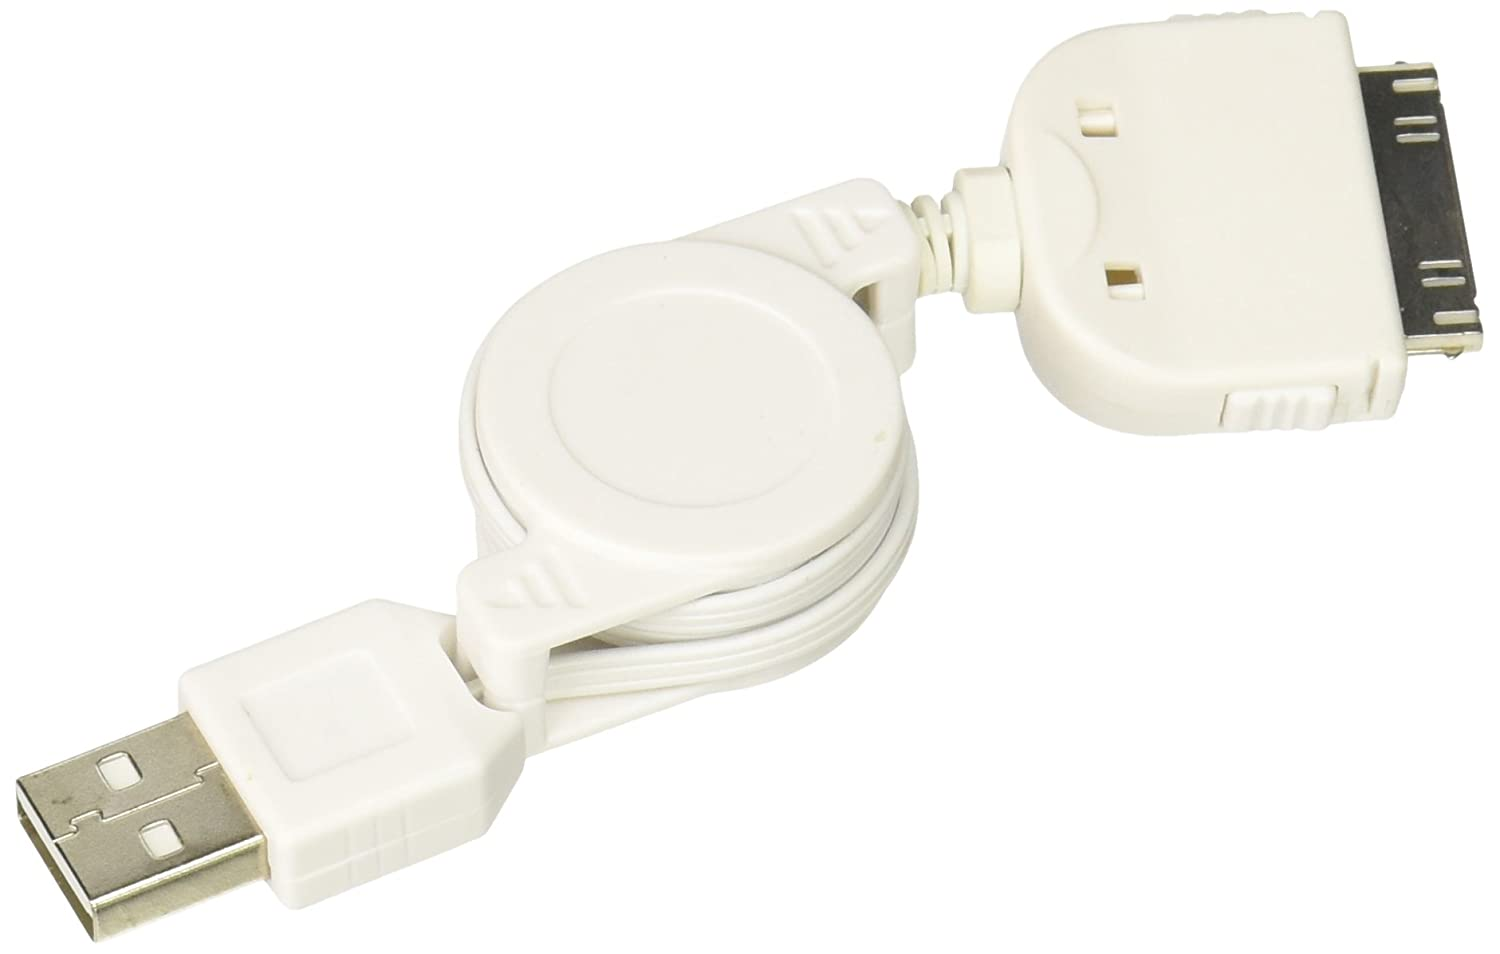 outlet Generic Orion Gadgets Retractable Sync and Charge USB Cable for Apple iPhone 3G - Non-Retail Packaging - White